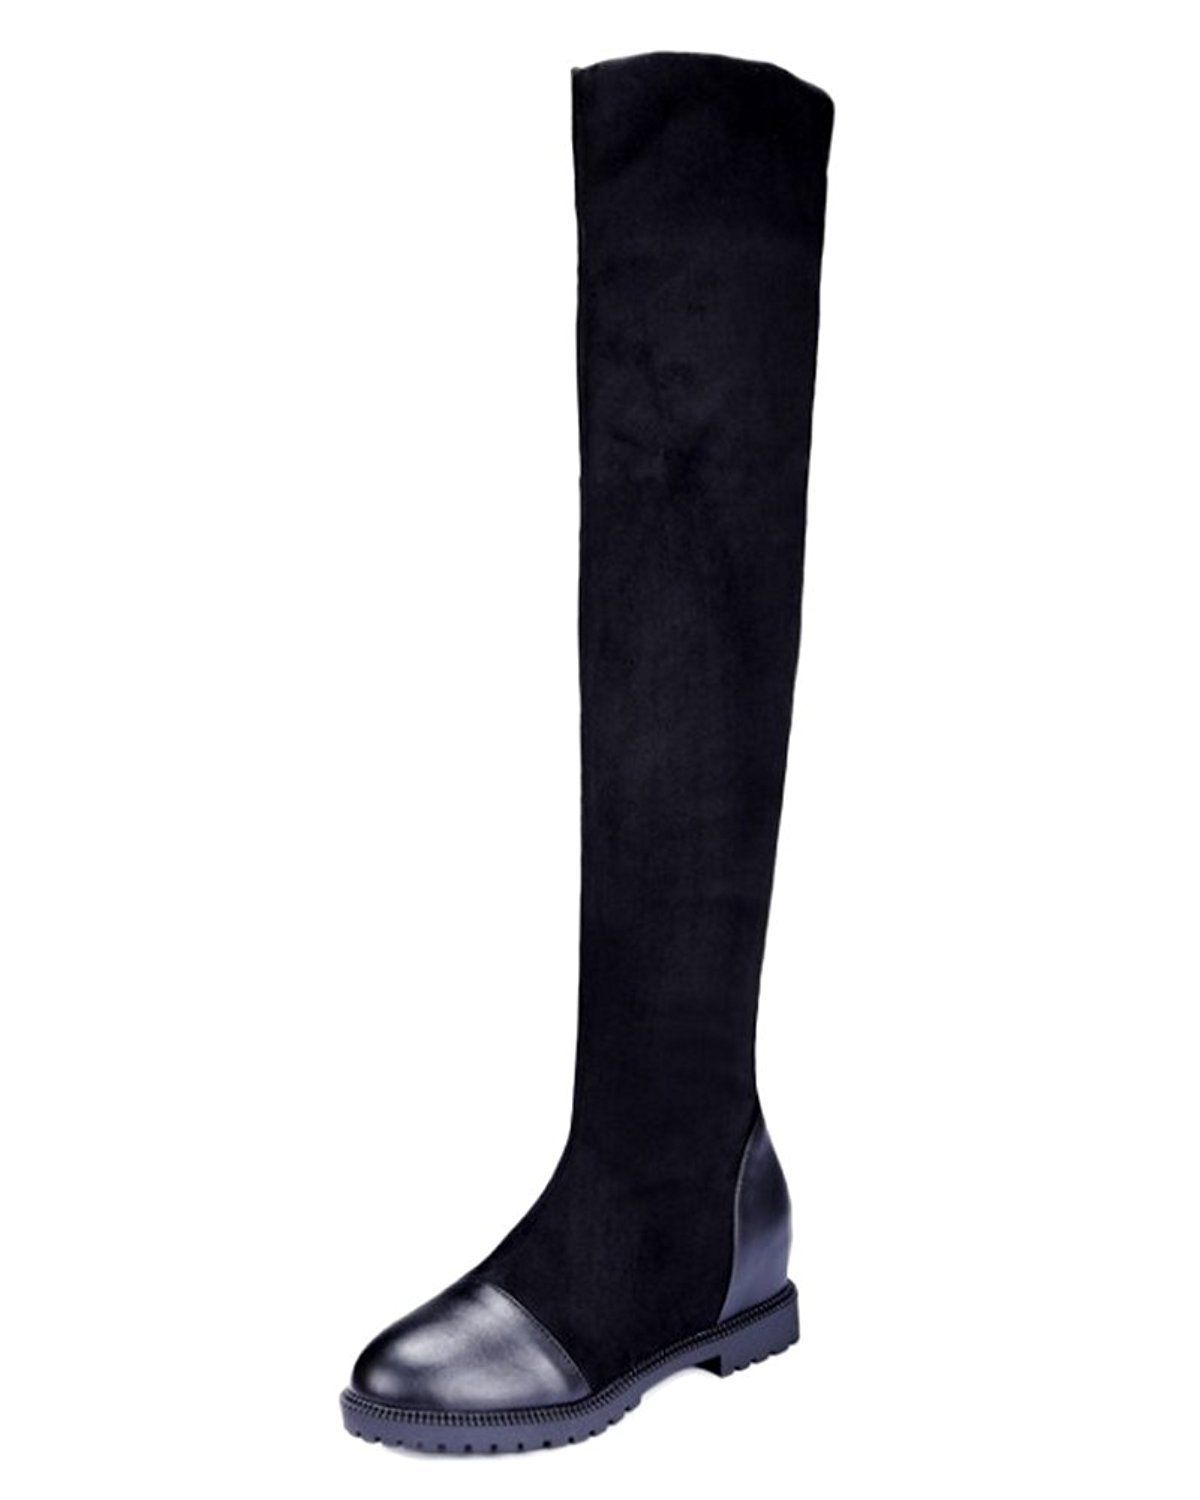 6d9c4e3972f Maybest Women Autumn Winter Elastic Thigh High Boots Fashion Over The Knee  Party Stretch Block Flat Heel Boot Black 10 B M US     Read more at the  image ...